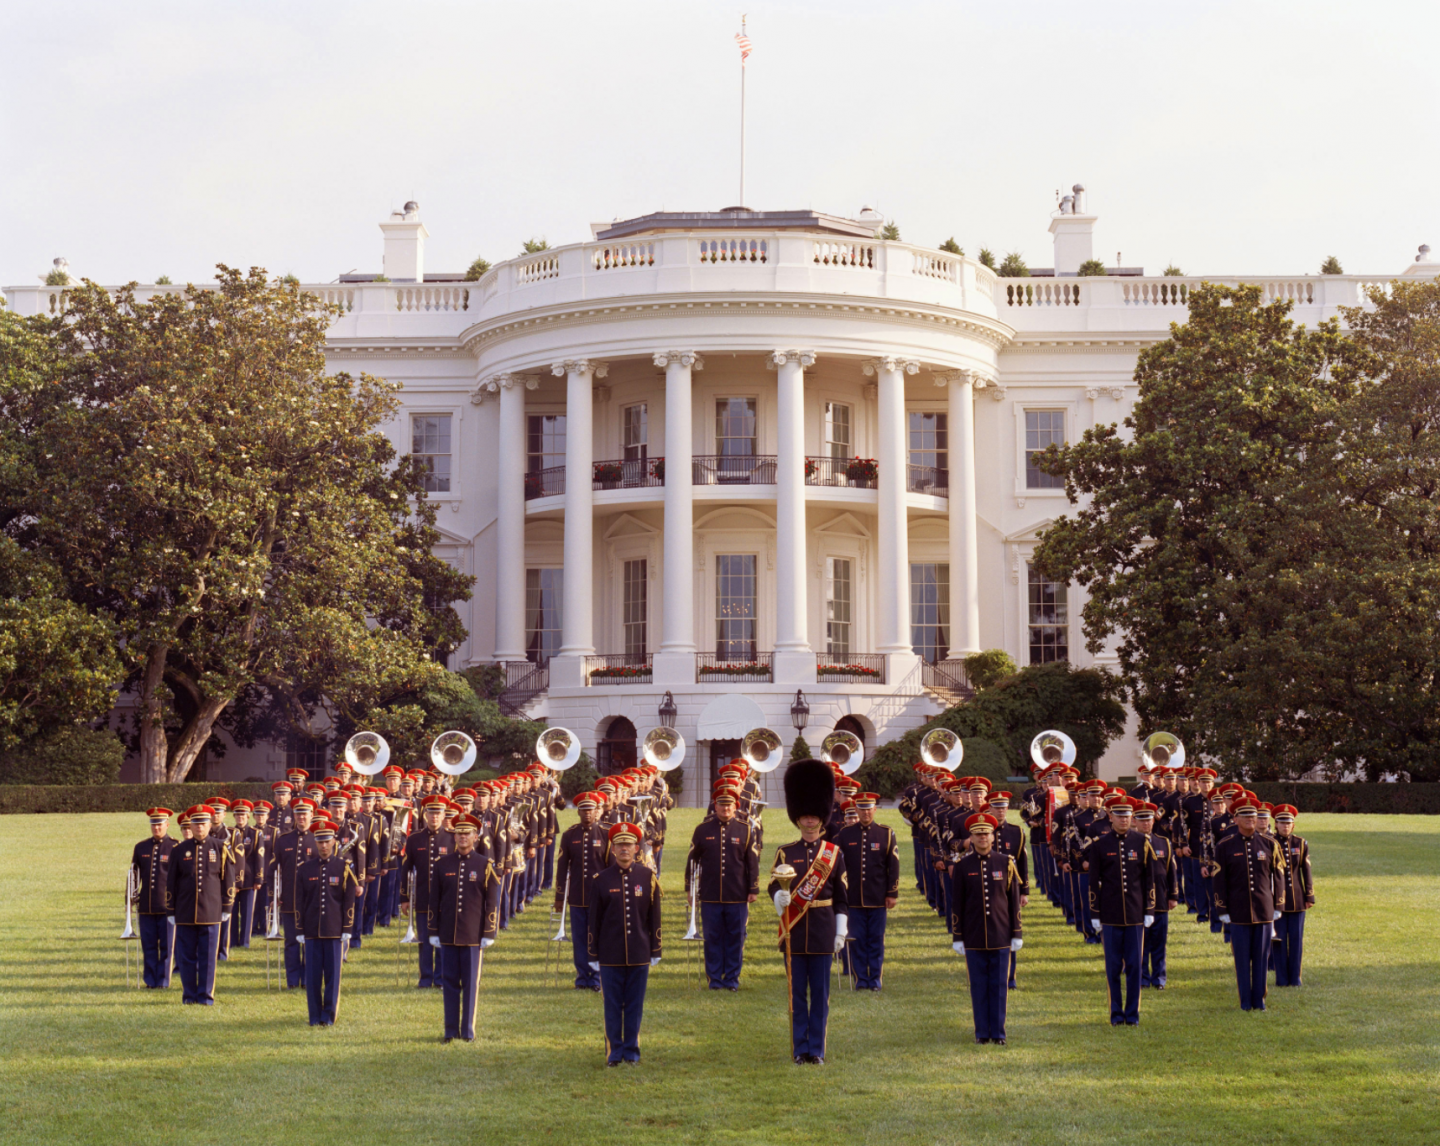 U.S. Army Band in front of the White House